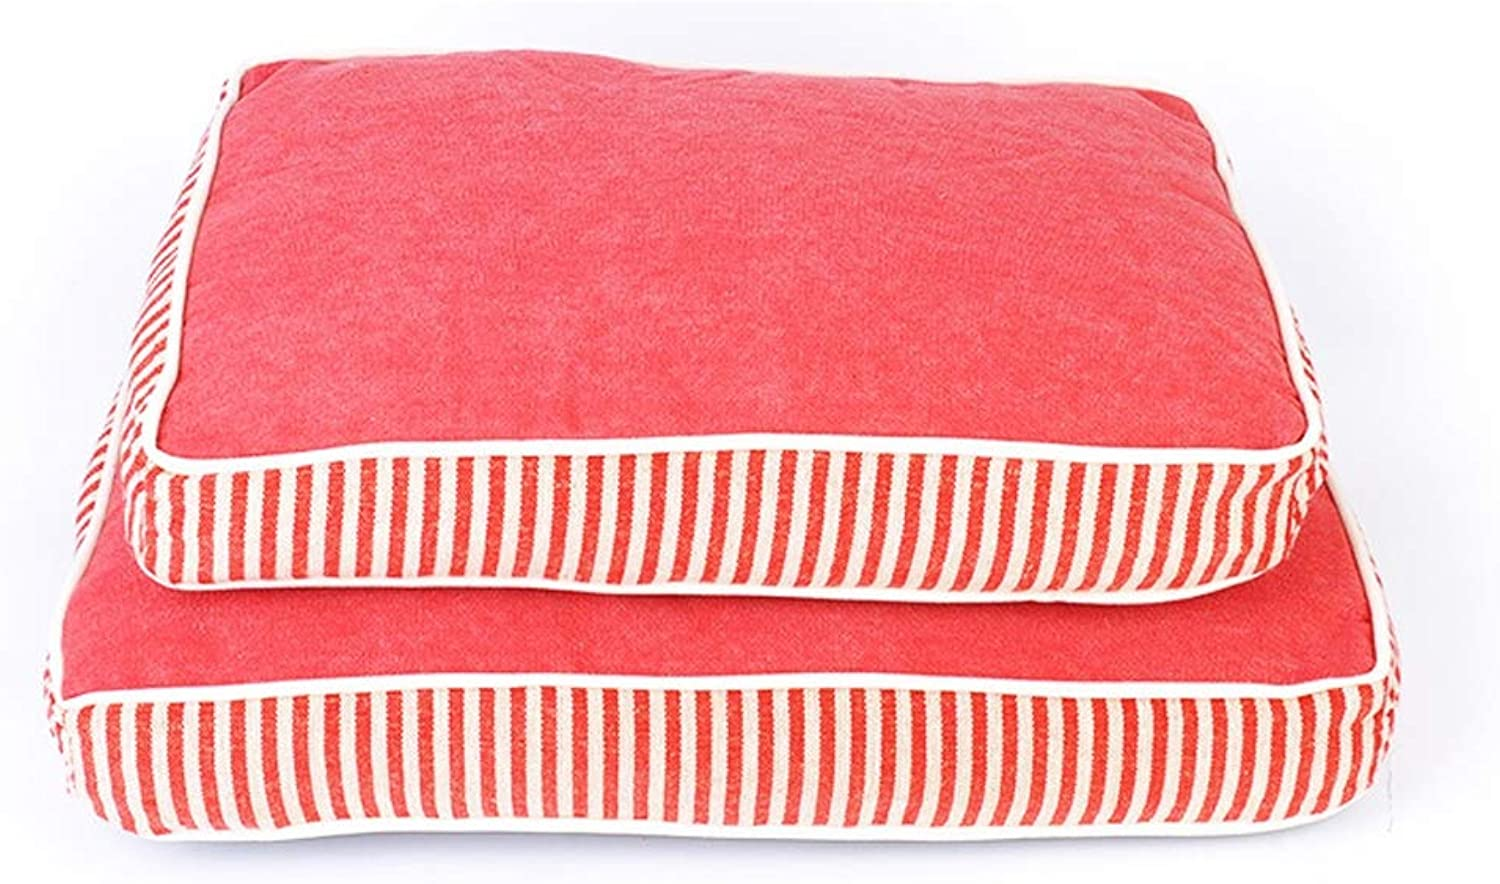 Pack of 2 Pet Dog Beds Autumn and Winter Warm Cotton pad Sleeping mat